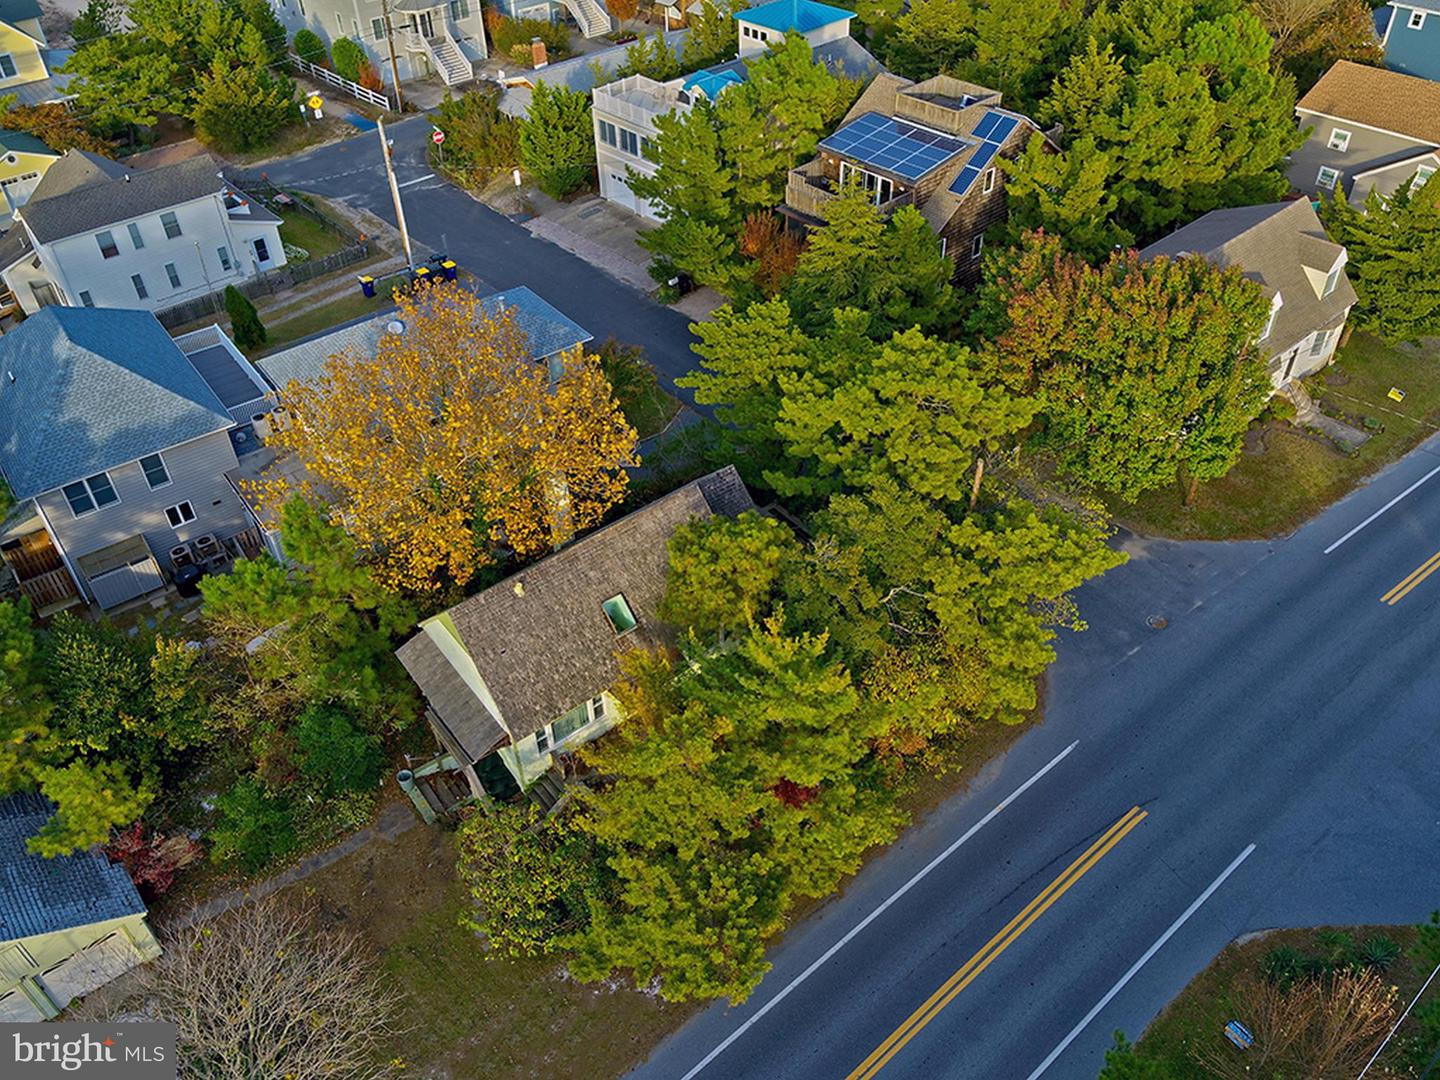 1010012638-300984187093-2019-03-07-15-42-28 12 Massachusetts Ave | Lewes, DE Real Estate For Sale | MLS# 1010012638  - Lee Ann Group